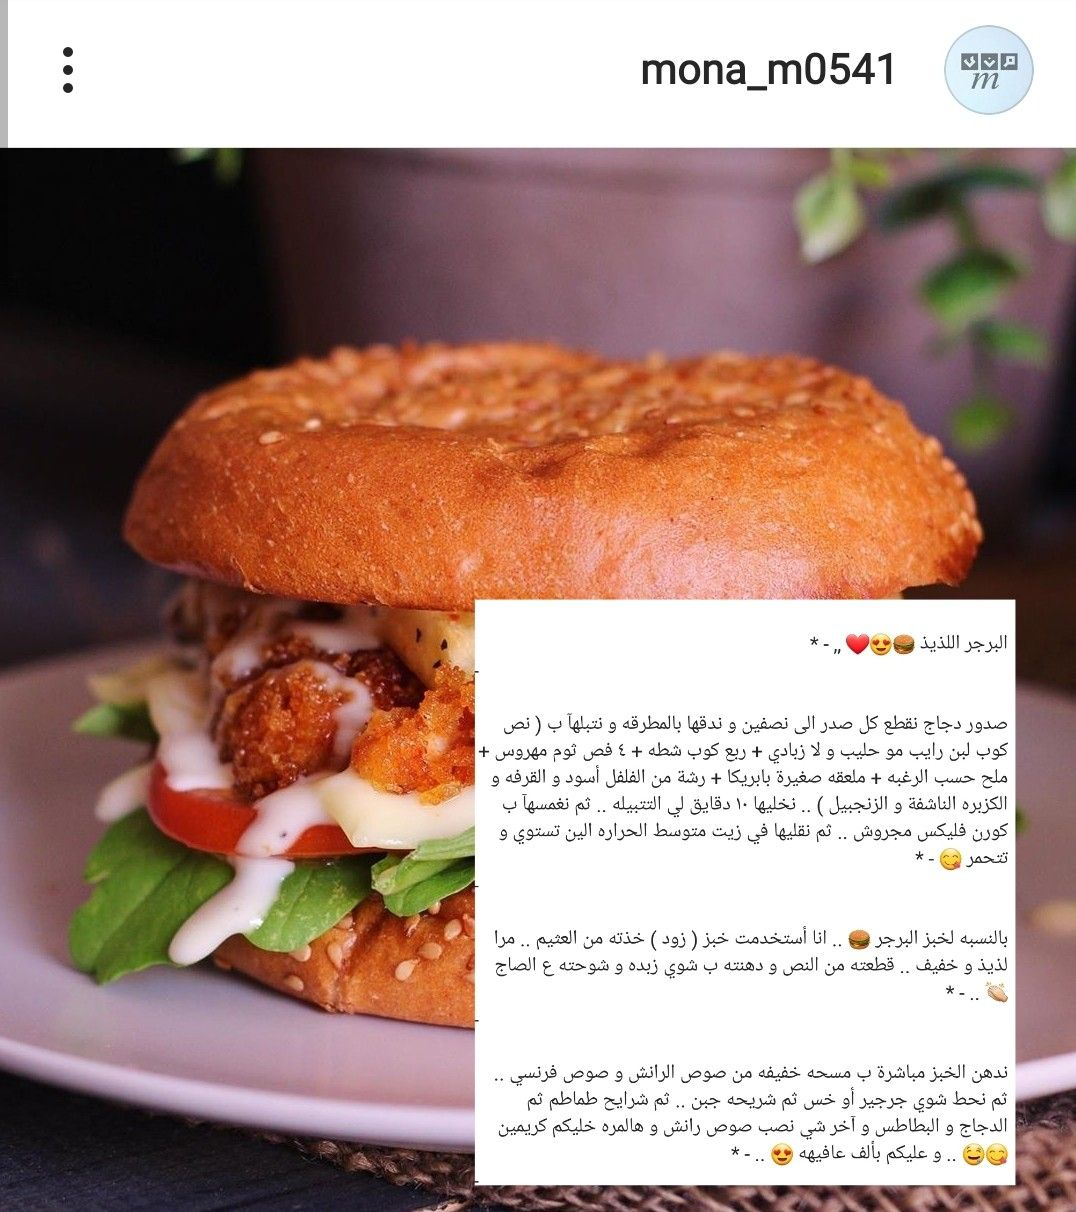 Pin By Hnoreen On Food طبخ Food Receipes Food Chicken Burgers